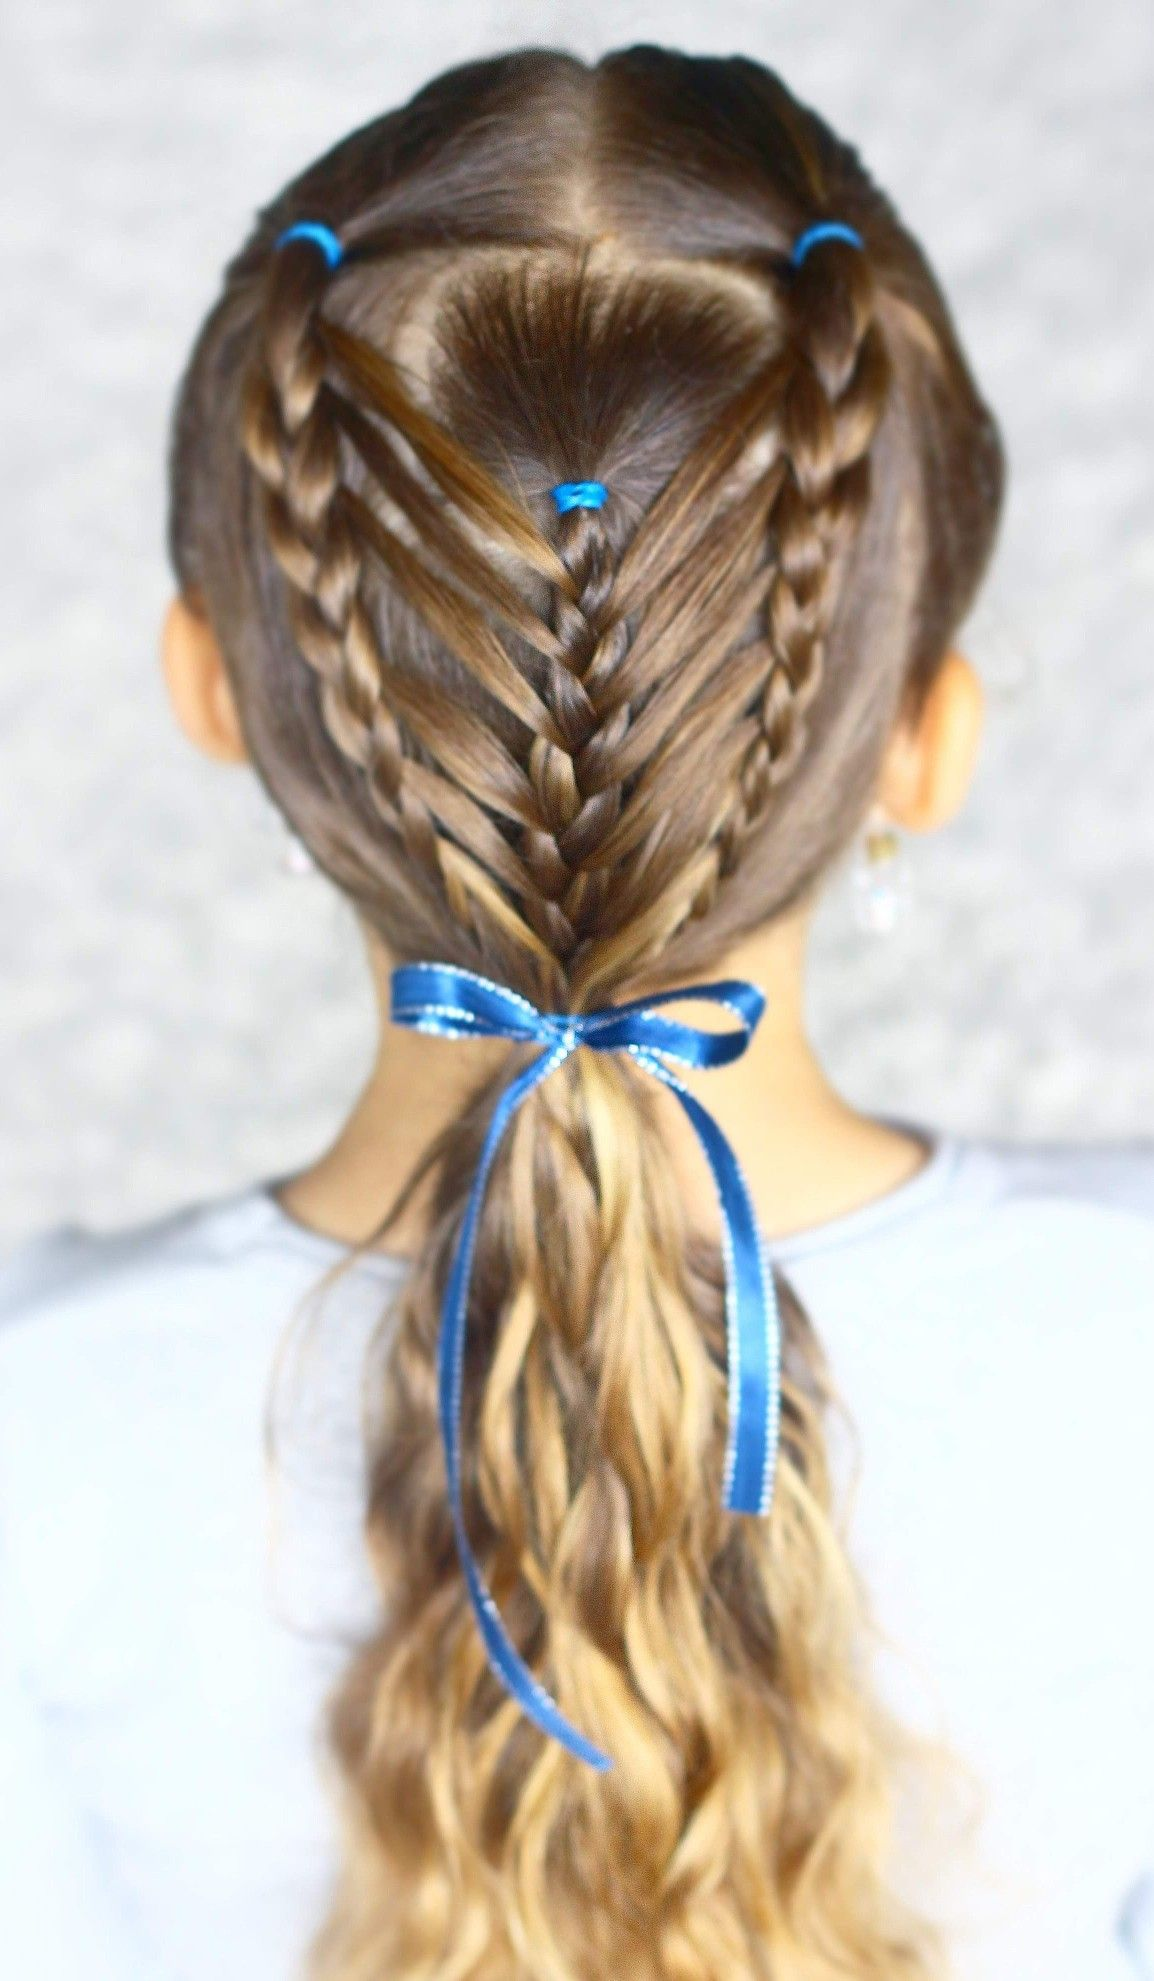 Cute girls hairstyle kids hair braids school hair arrow braid